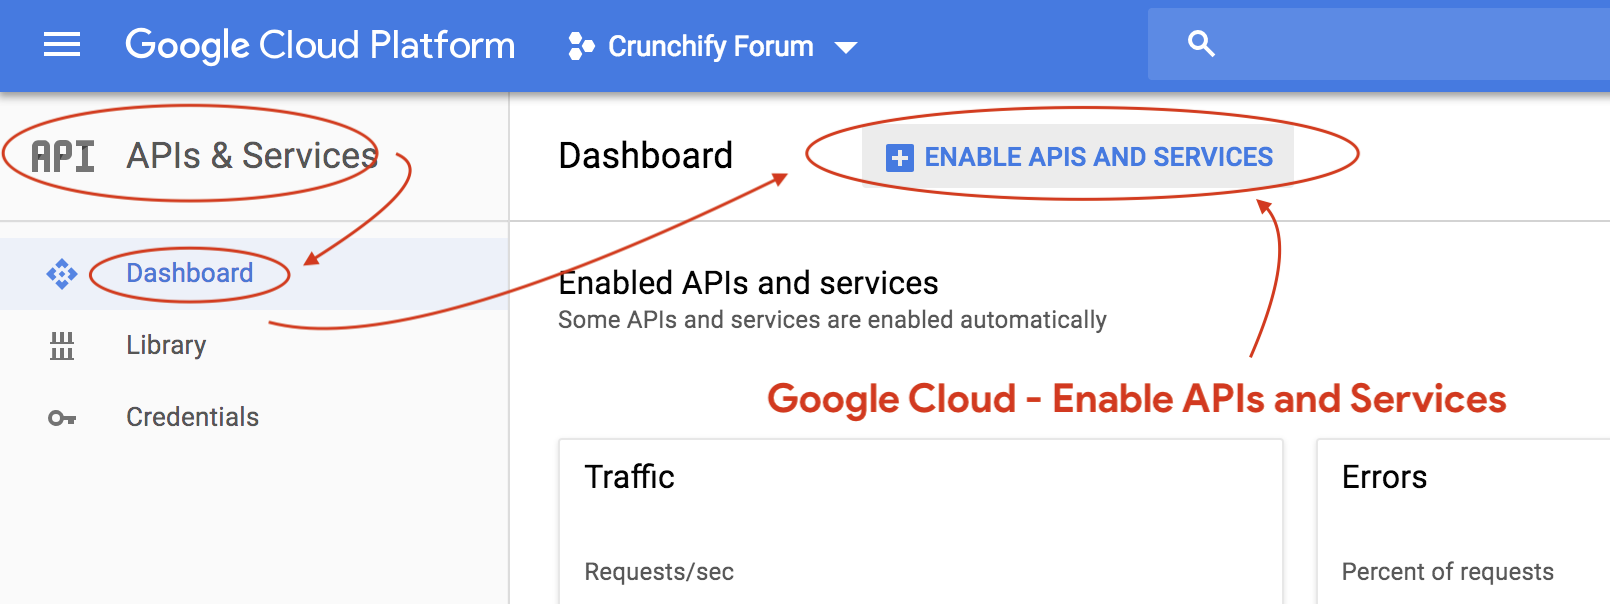 Google Cloud - Enable APIs and Services